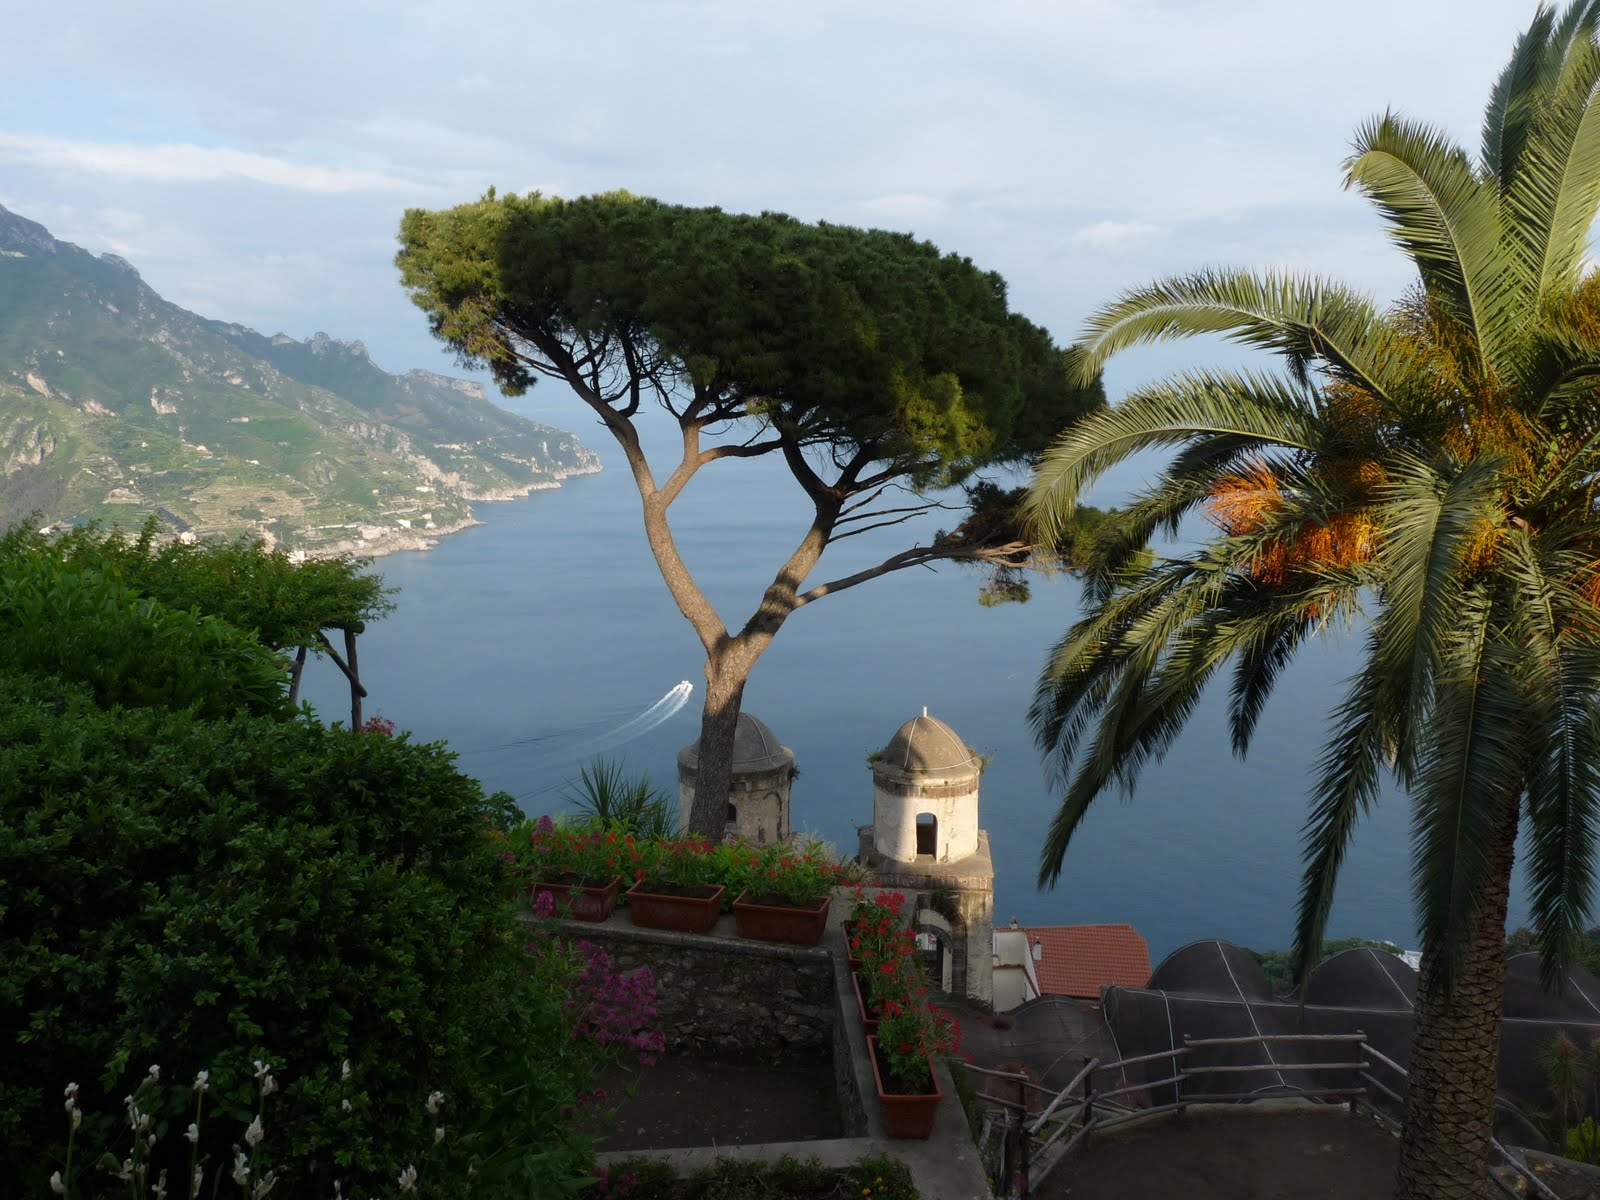 Praticamente um local ravello for Jardin villa rufolo